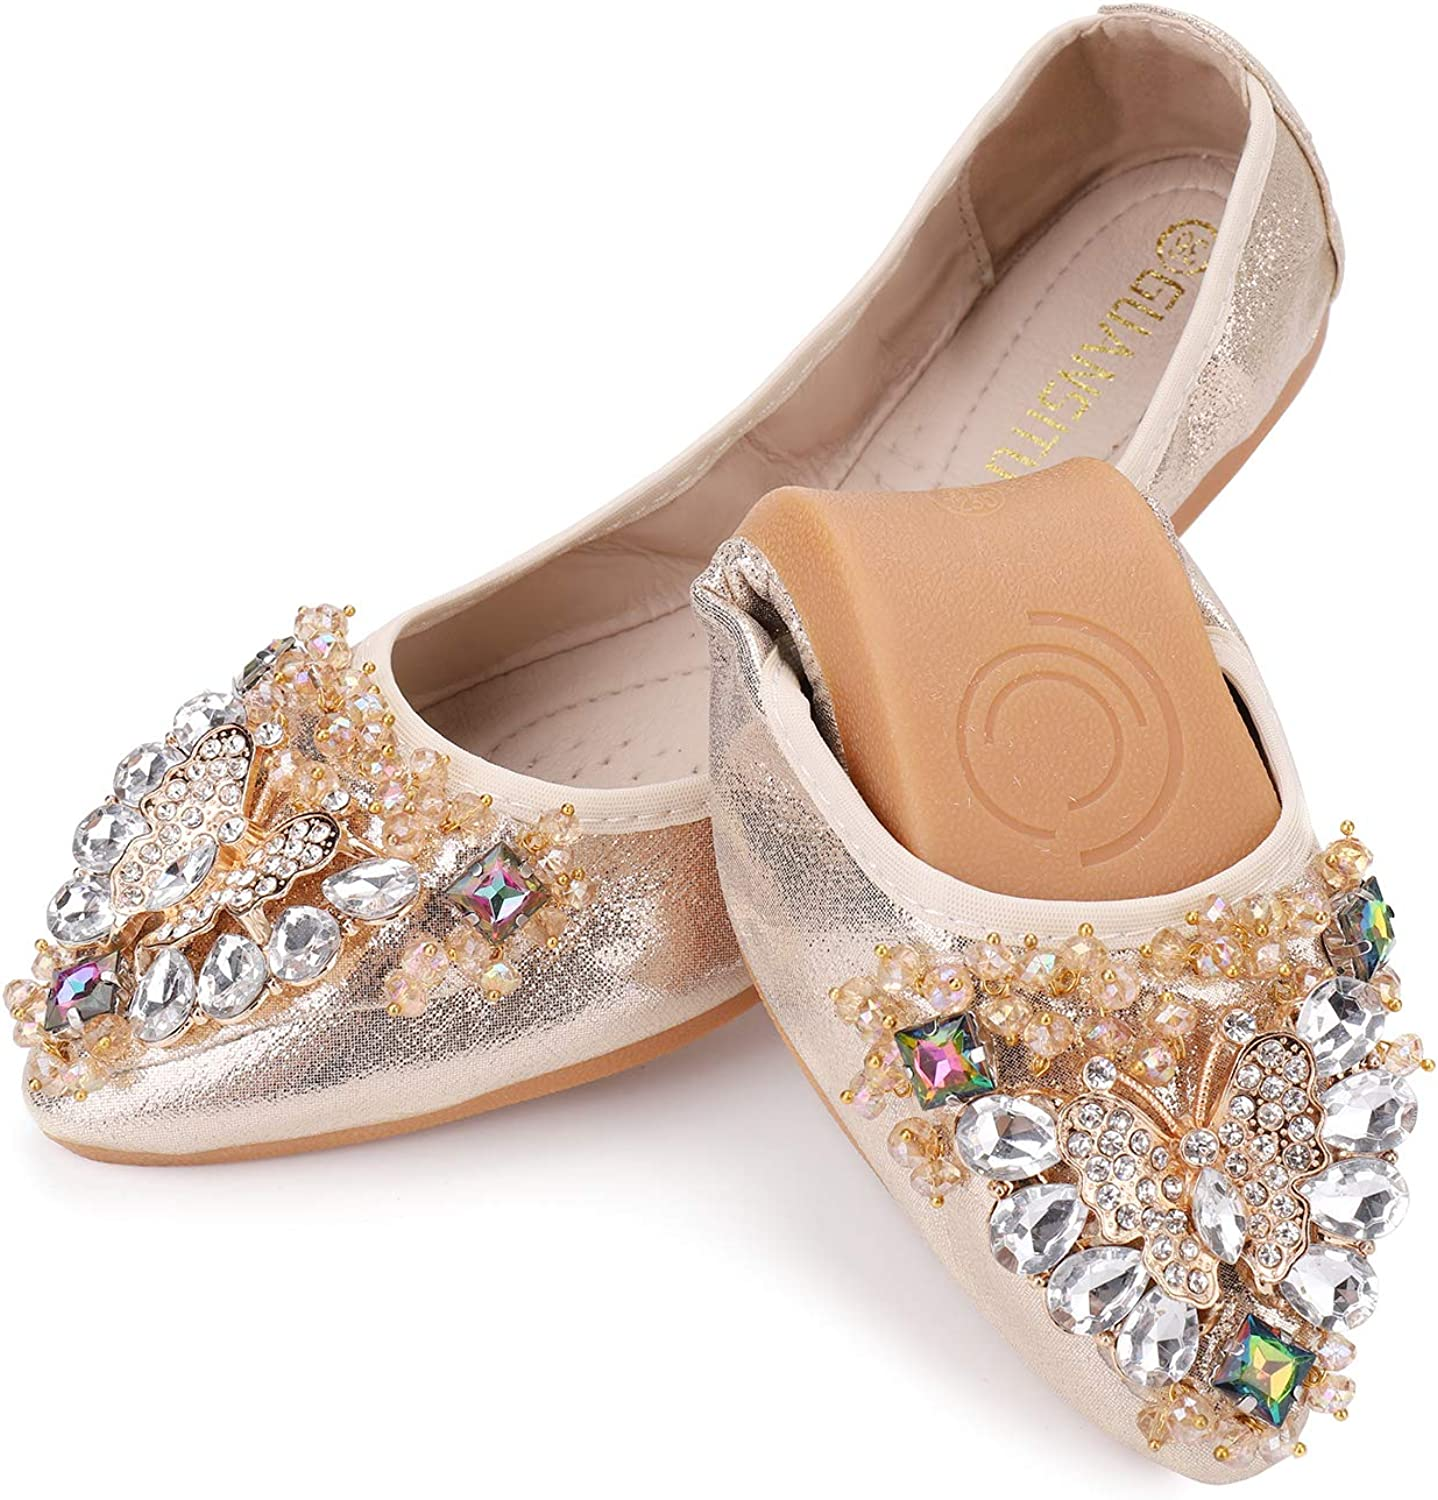 Women's Foldable Ballet Flats Wedding Raleigh Max 82% OFF Mall Casual Rhinestone Sparkly